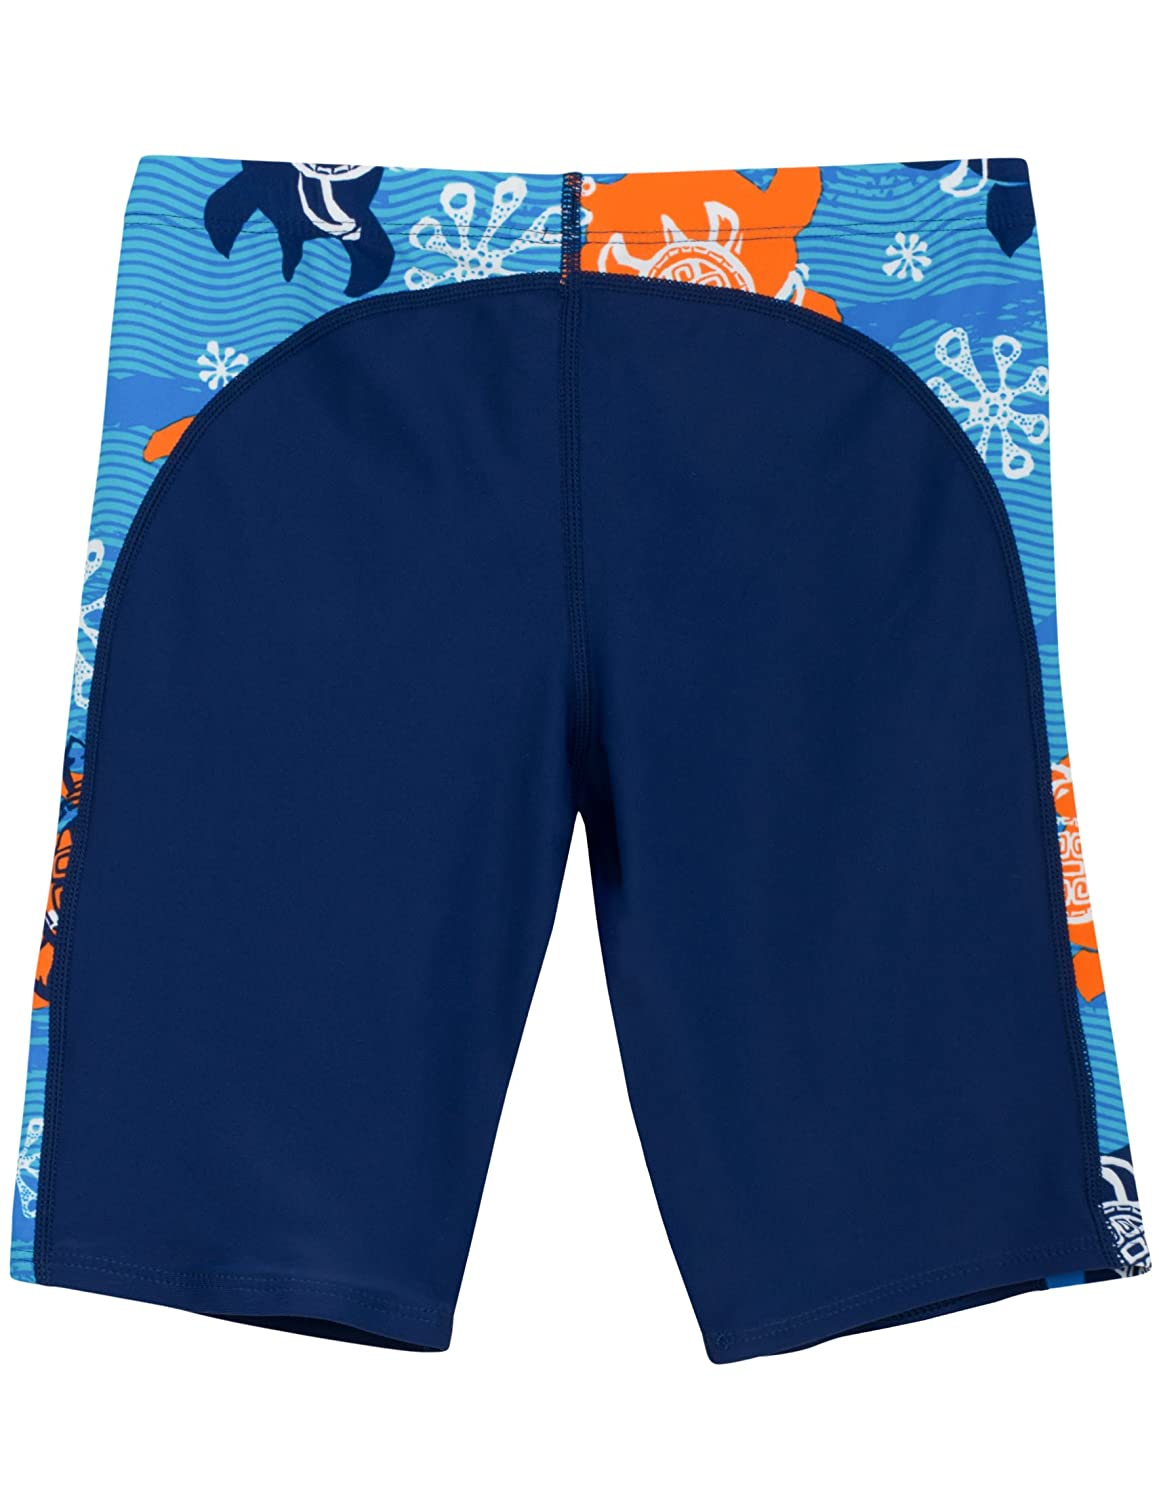 Tuga Boys Two Piece Long Sleeve Swimsuit Set 2-14 Years Protection UPF 50